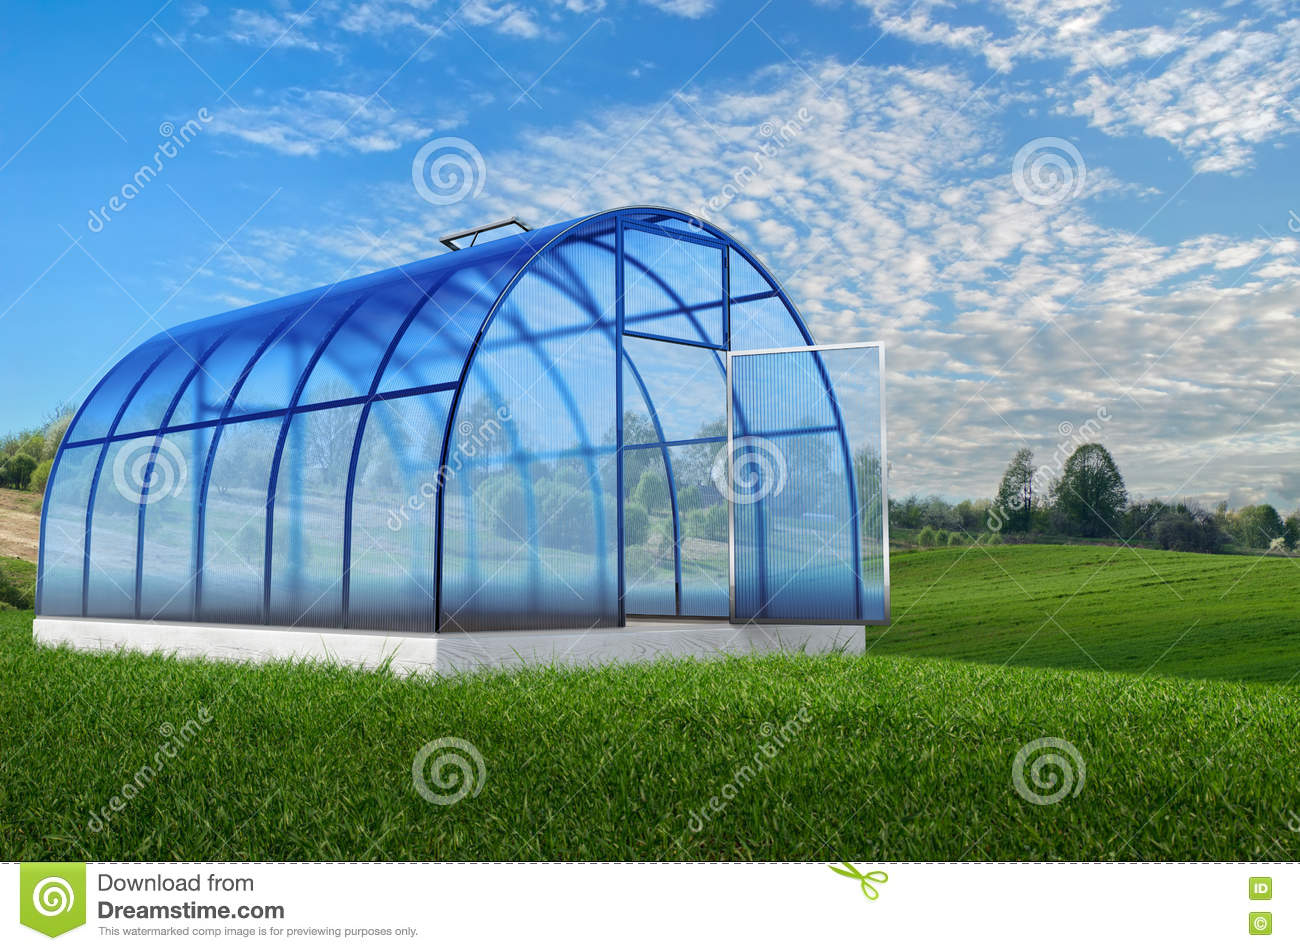 Sensational One Round Greenhouse In Summer Stock Illustration Home Interior And Landscaping Dextoversignezvosmurscom